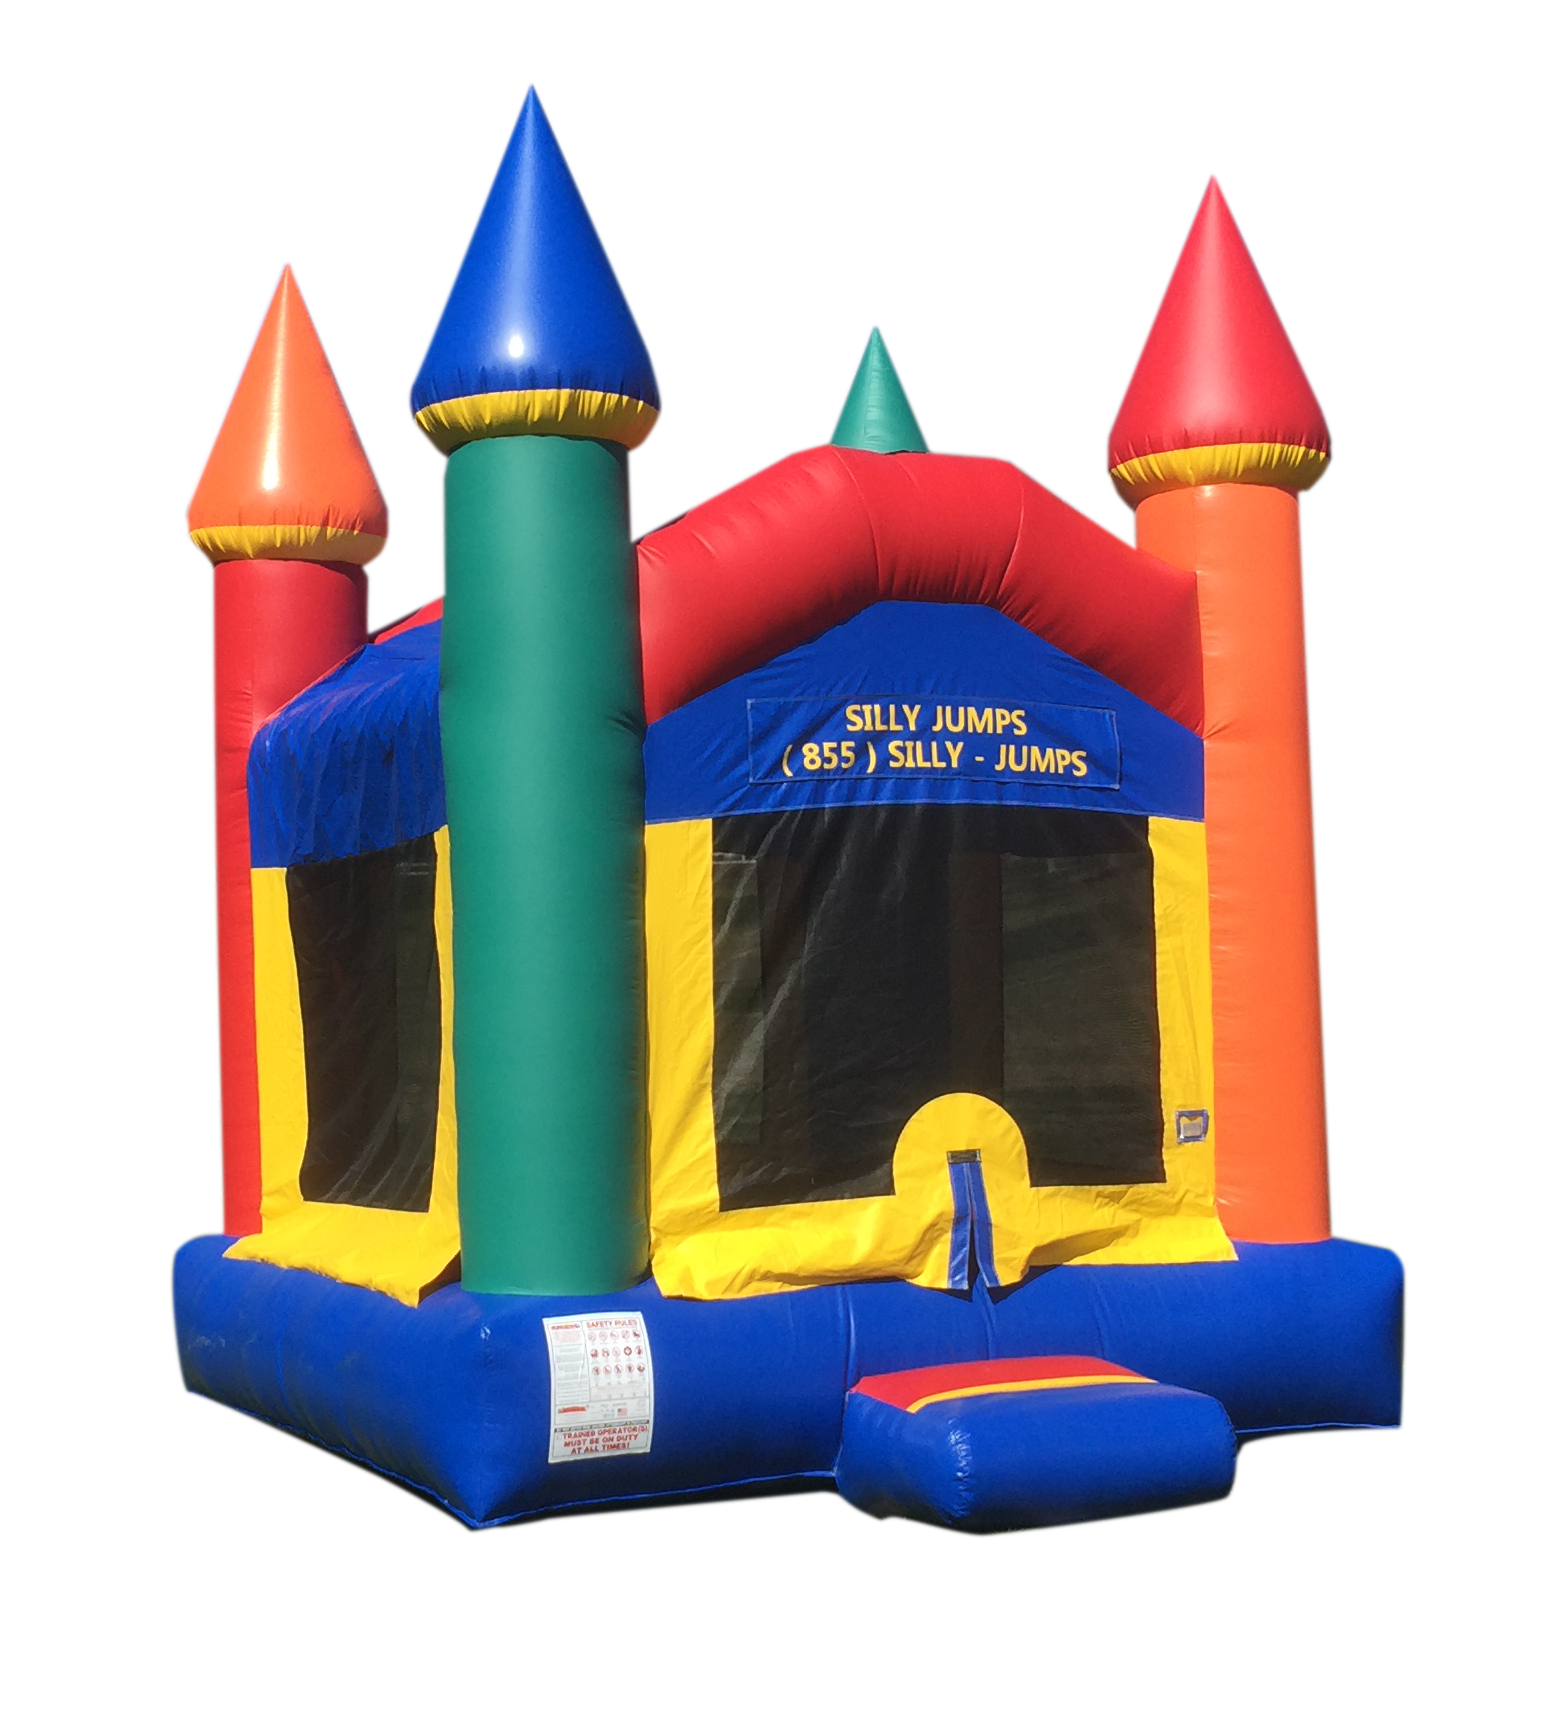 Multi-Colored Bounce Castle - SillyJumps